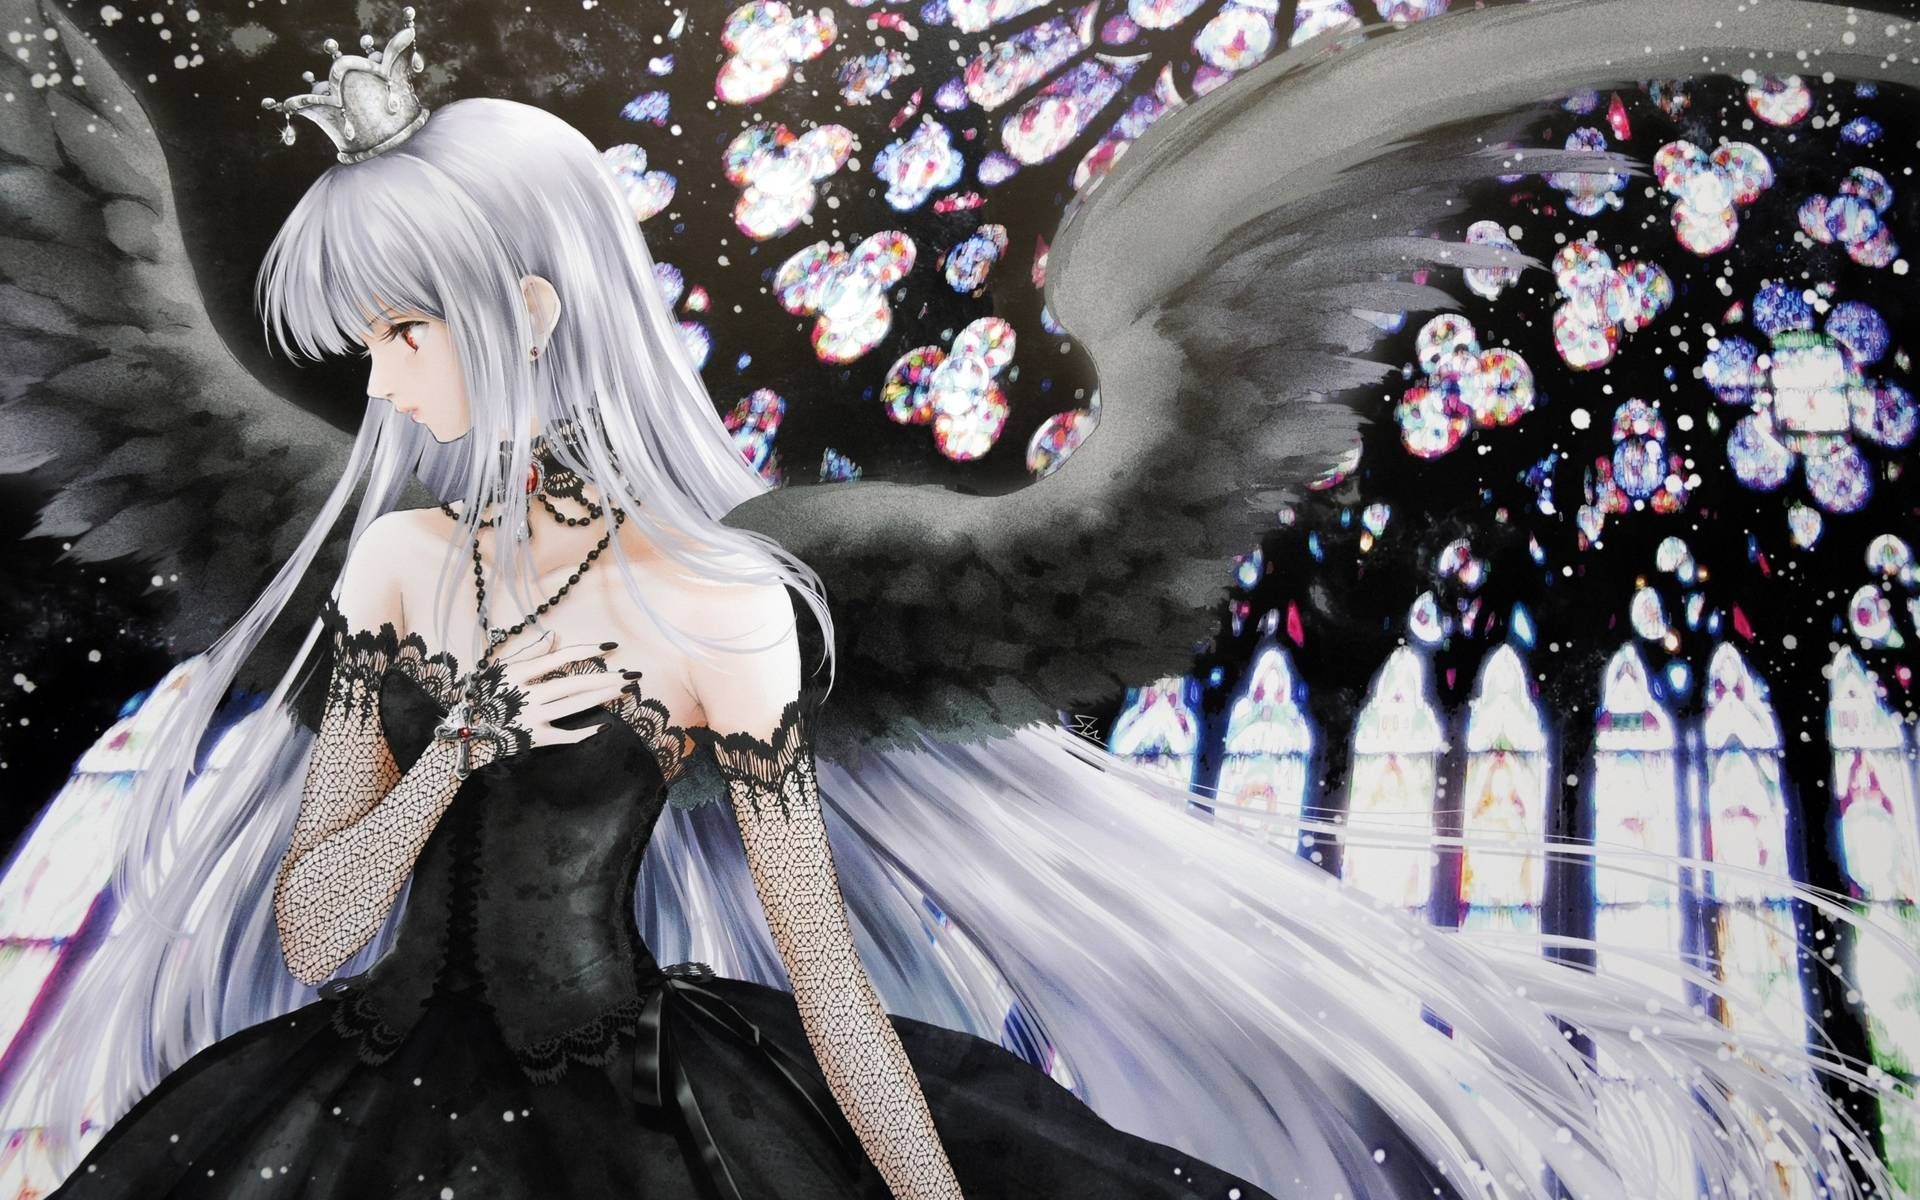 Res: 1920x1200, Anime Vampire Wallpapers - Wallpaper Cave